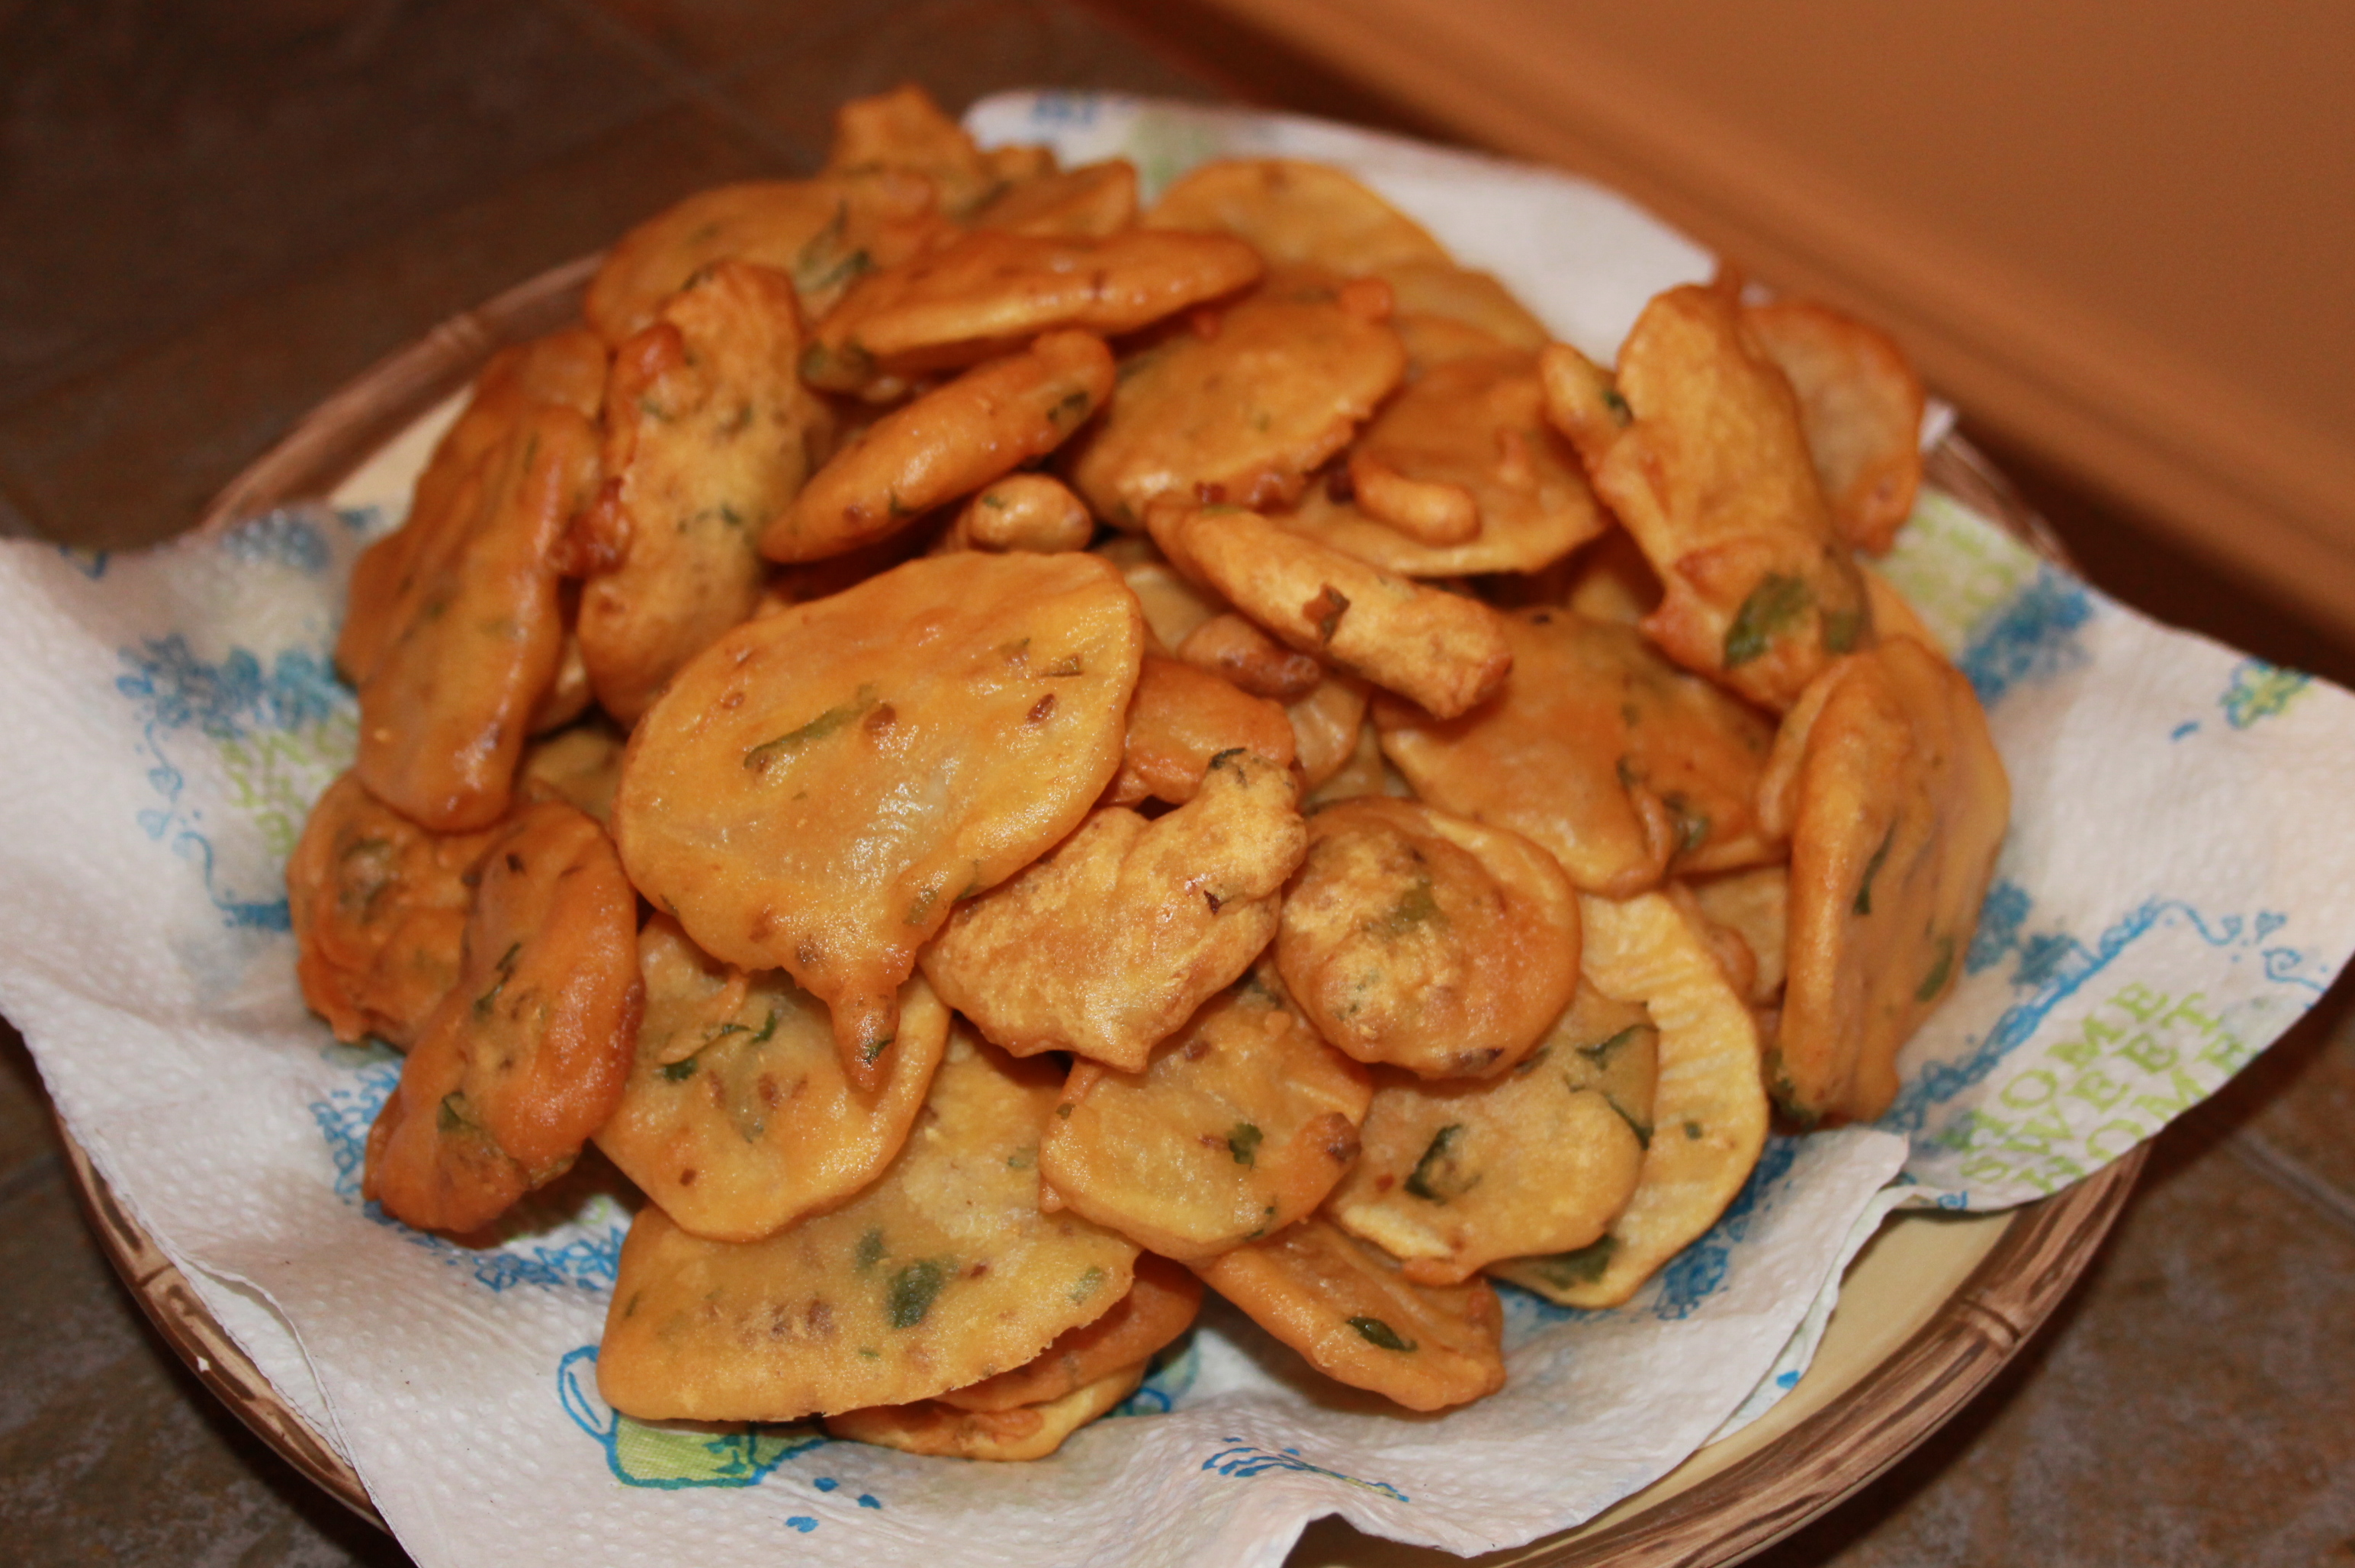 Skillet scrumplicious food page 2 bhajia heaven forumfinder Choice Image